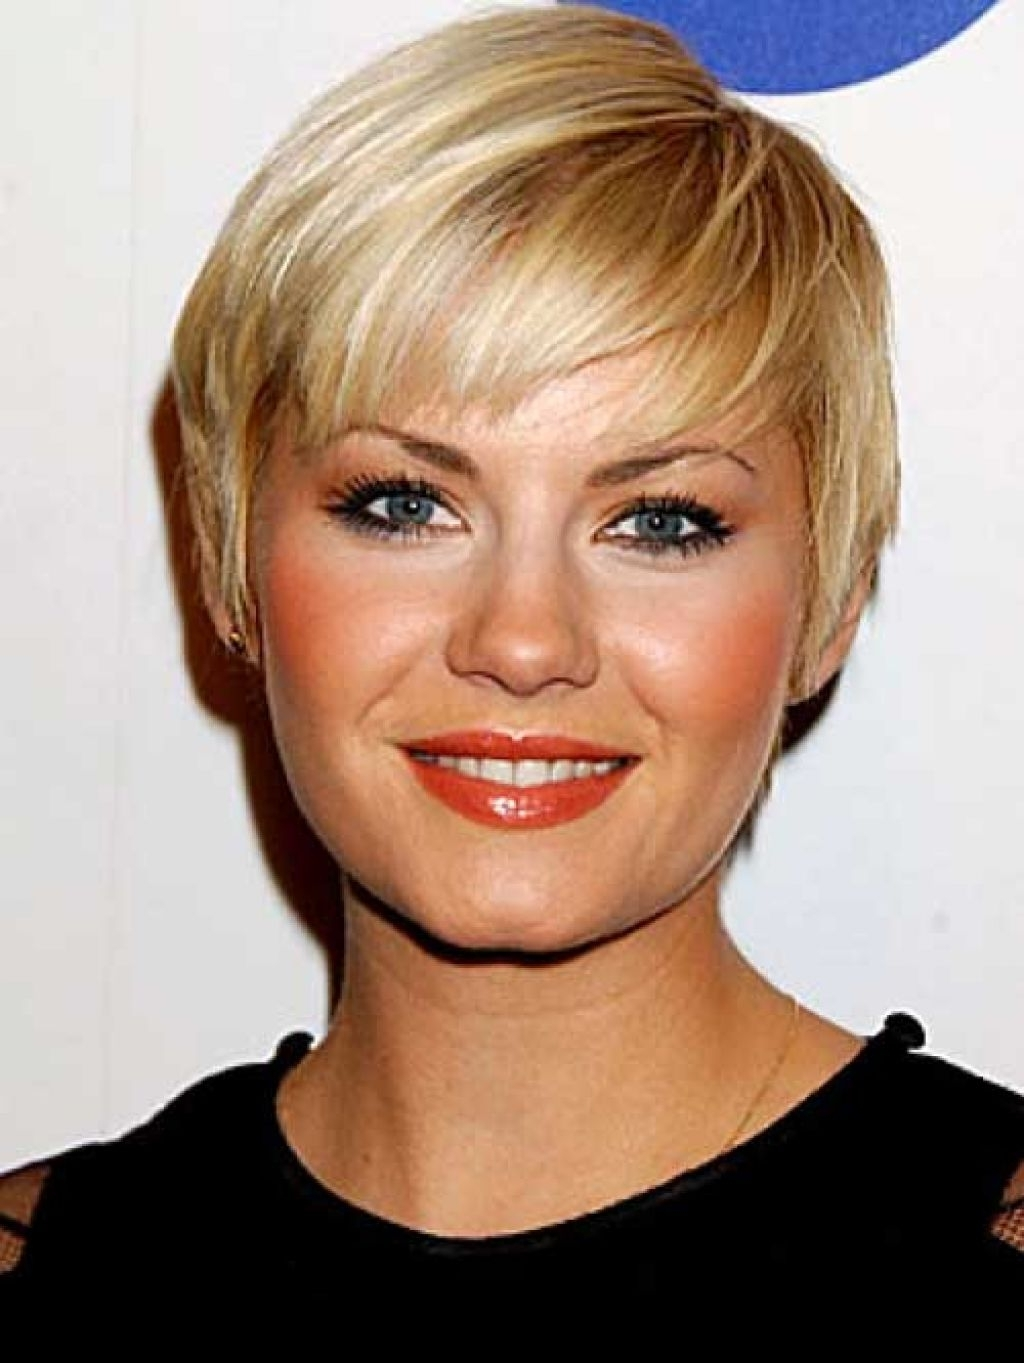 Gallery Of Short Pixie Hairstyles For Thin Hair View 10 Of 15 Photos